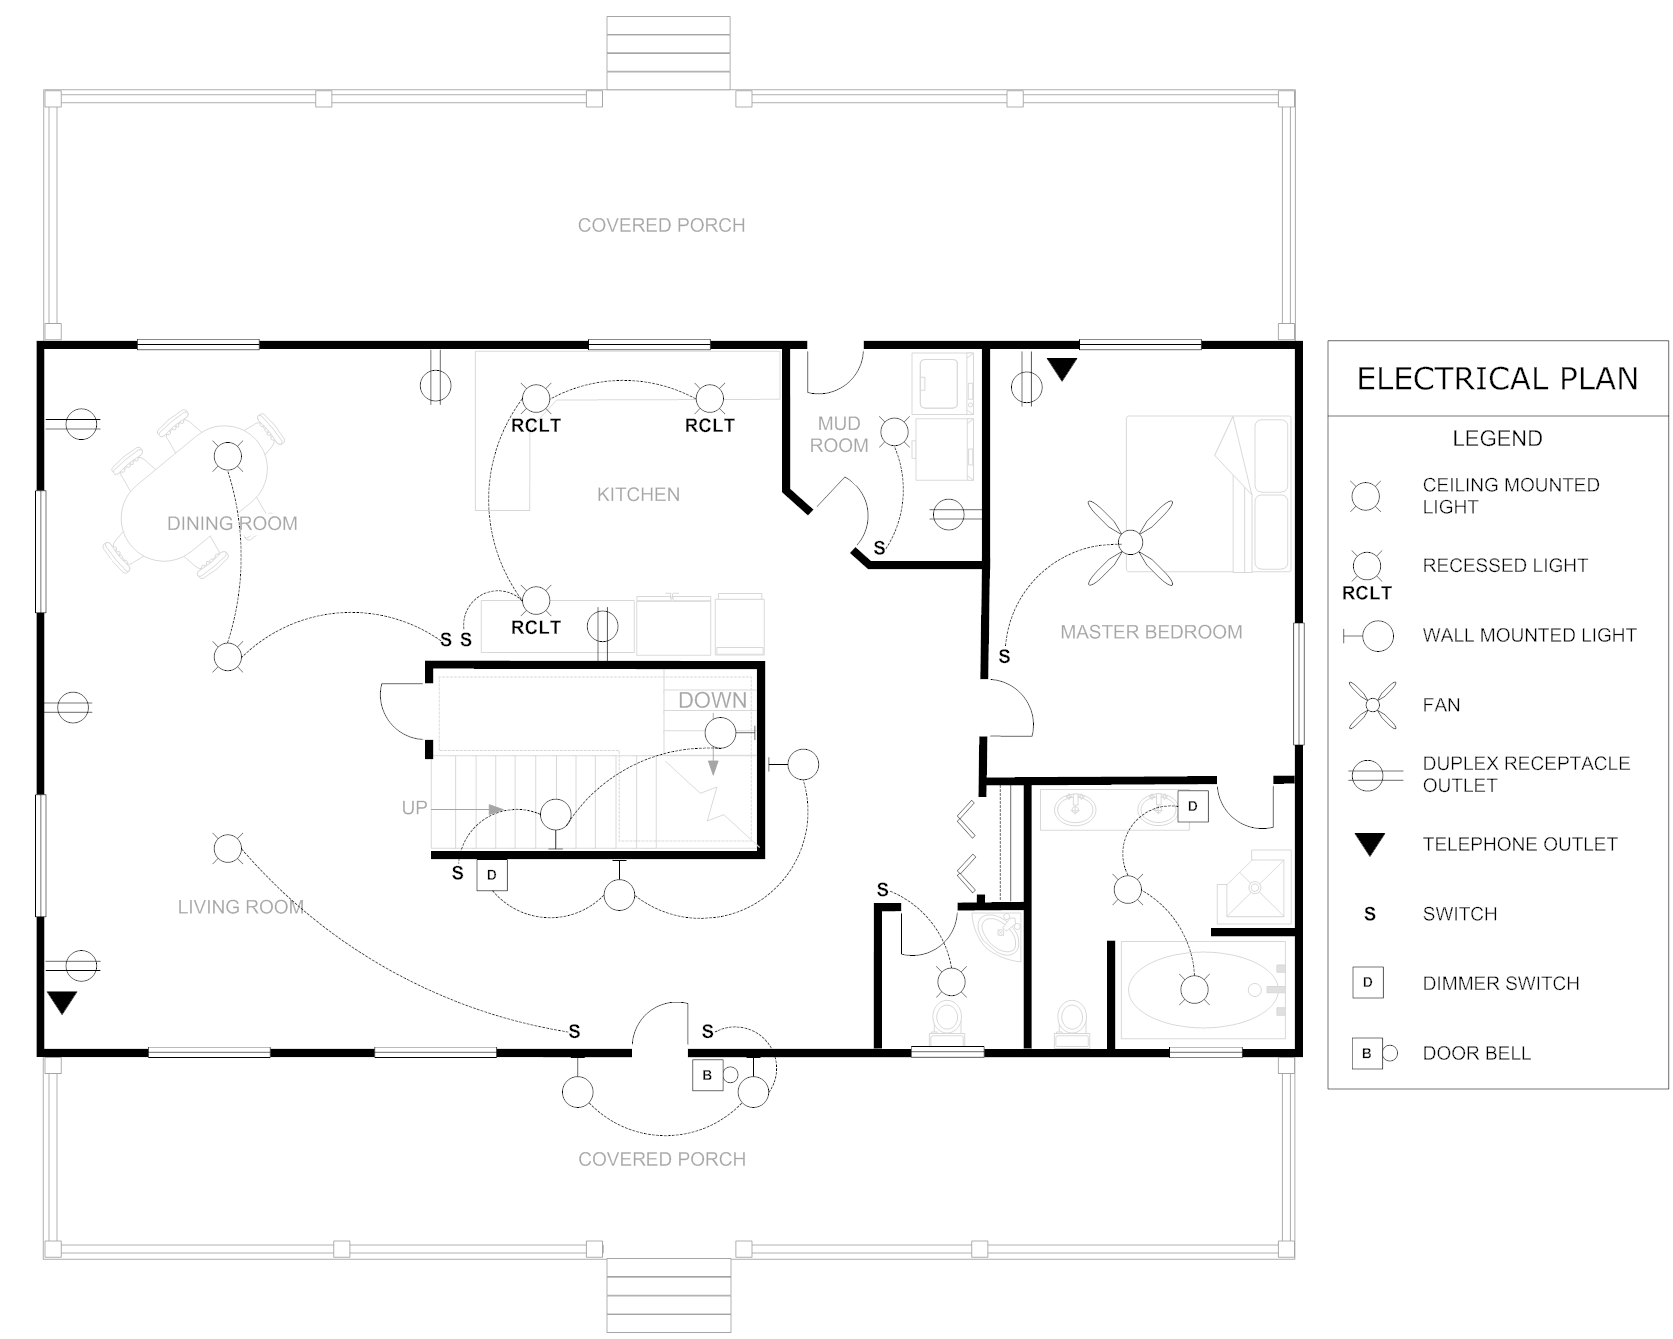 Floor Plan xample lectrical House - House Plans #5279 - ^